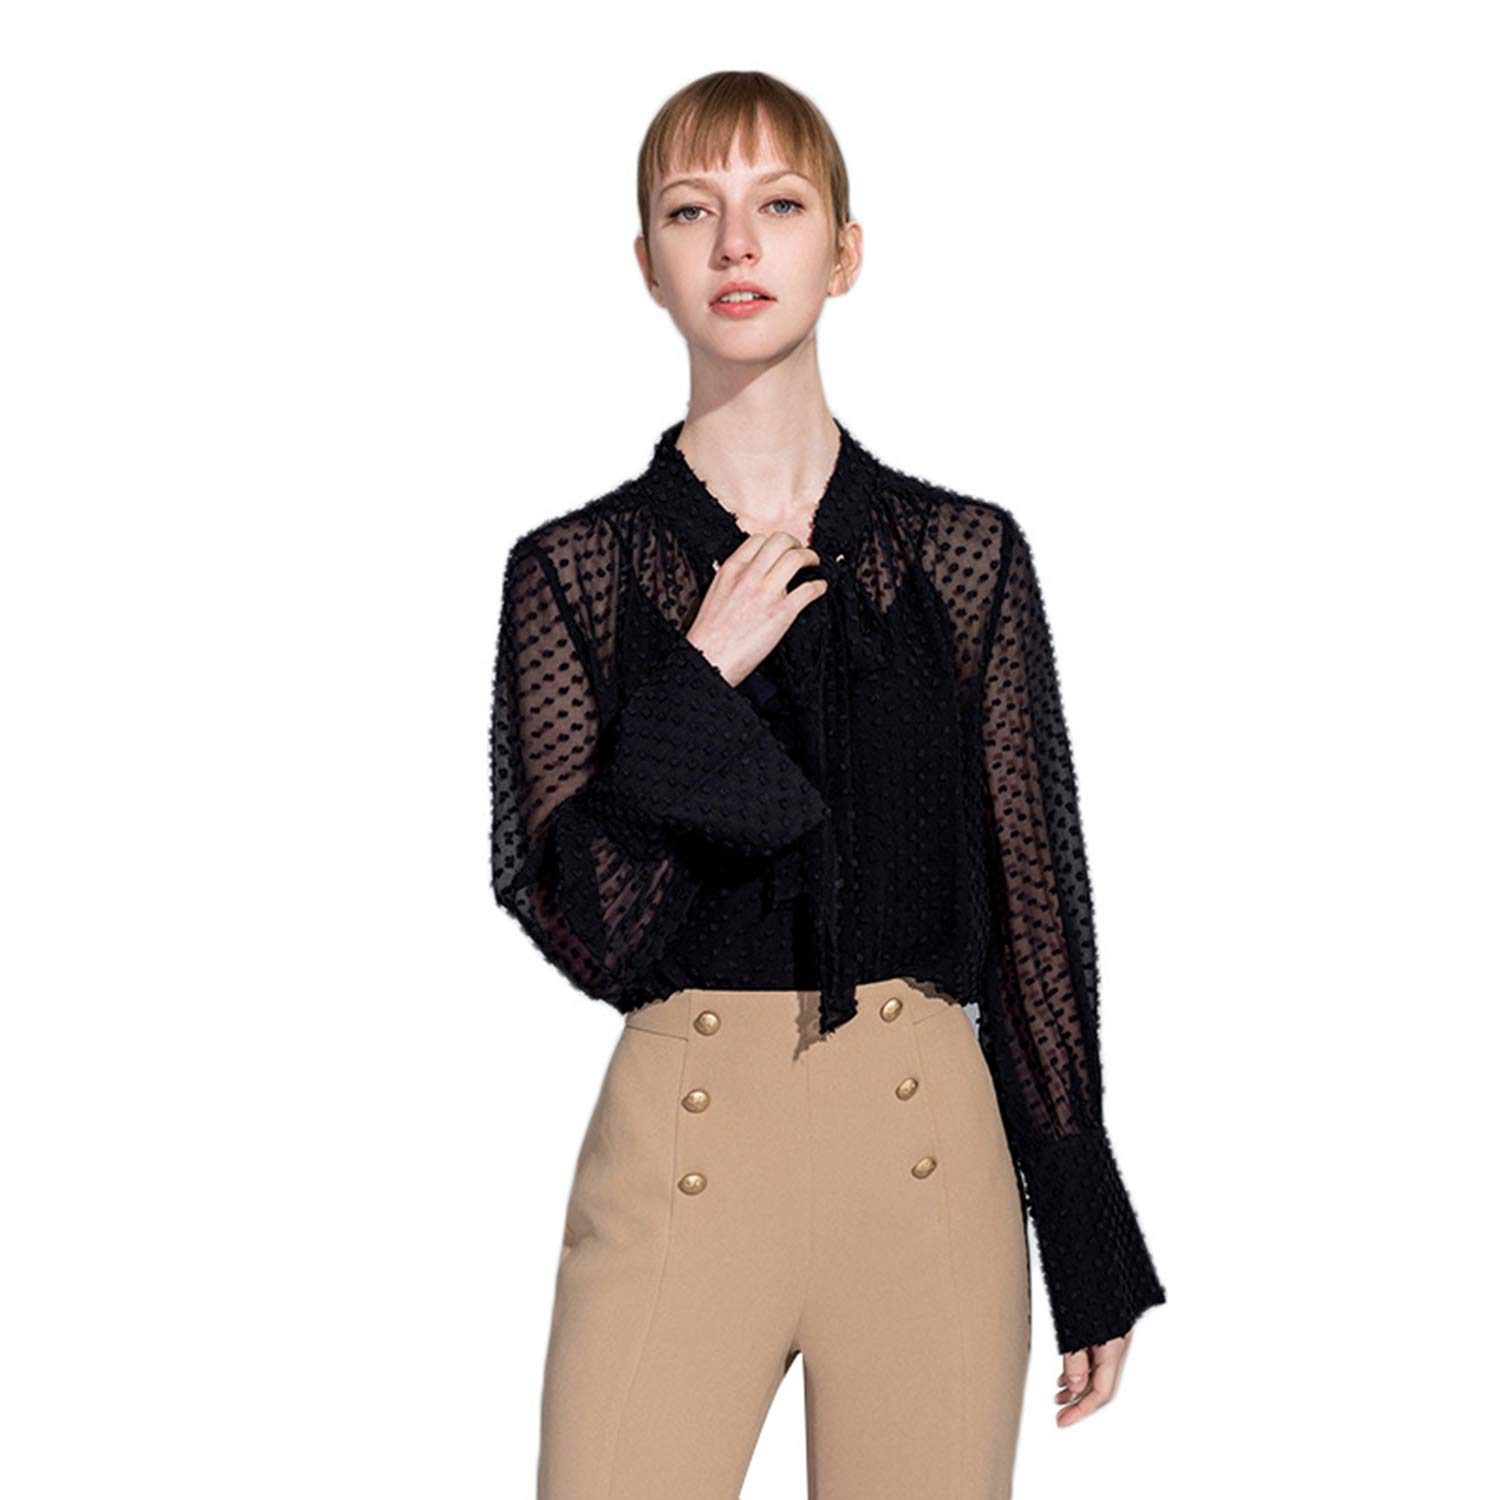 Black Sexy Perspective Shirt, Solid color Polka Dot Print Top, Trumpet Sleeves